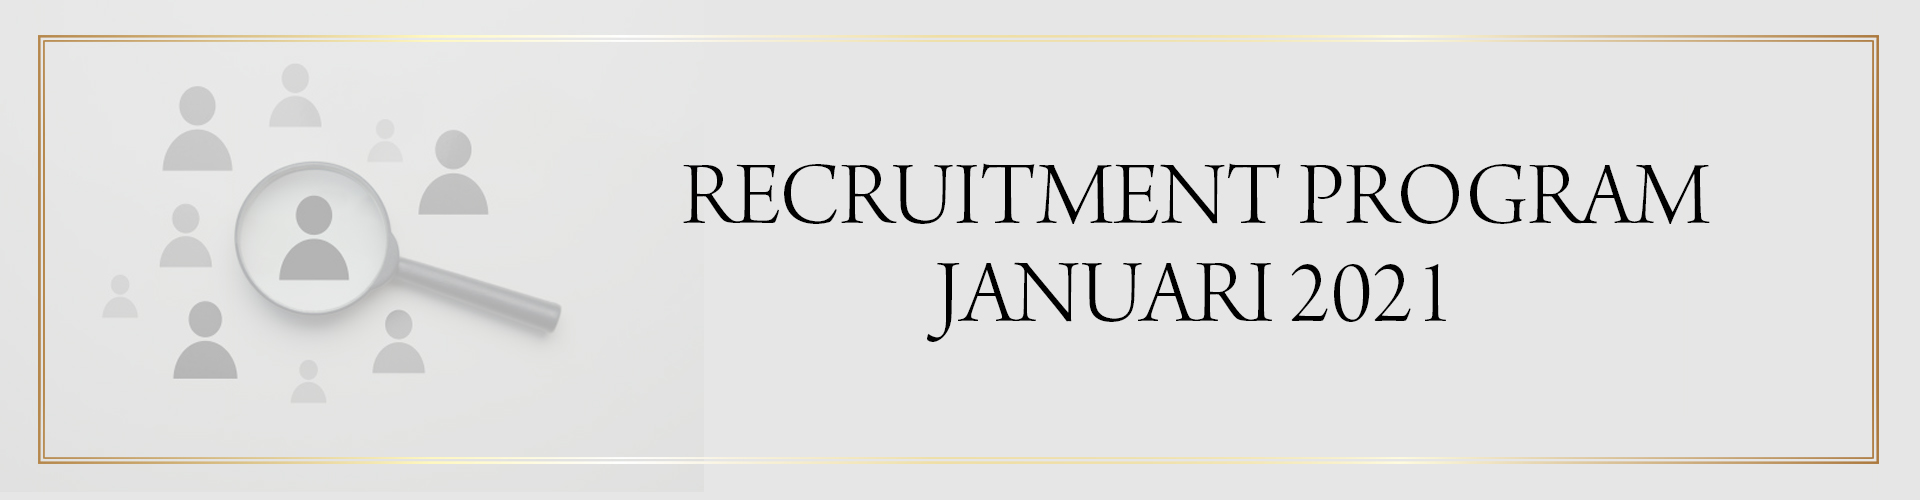 recruitement program january 2021